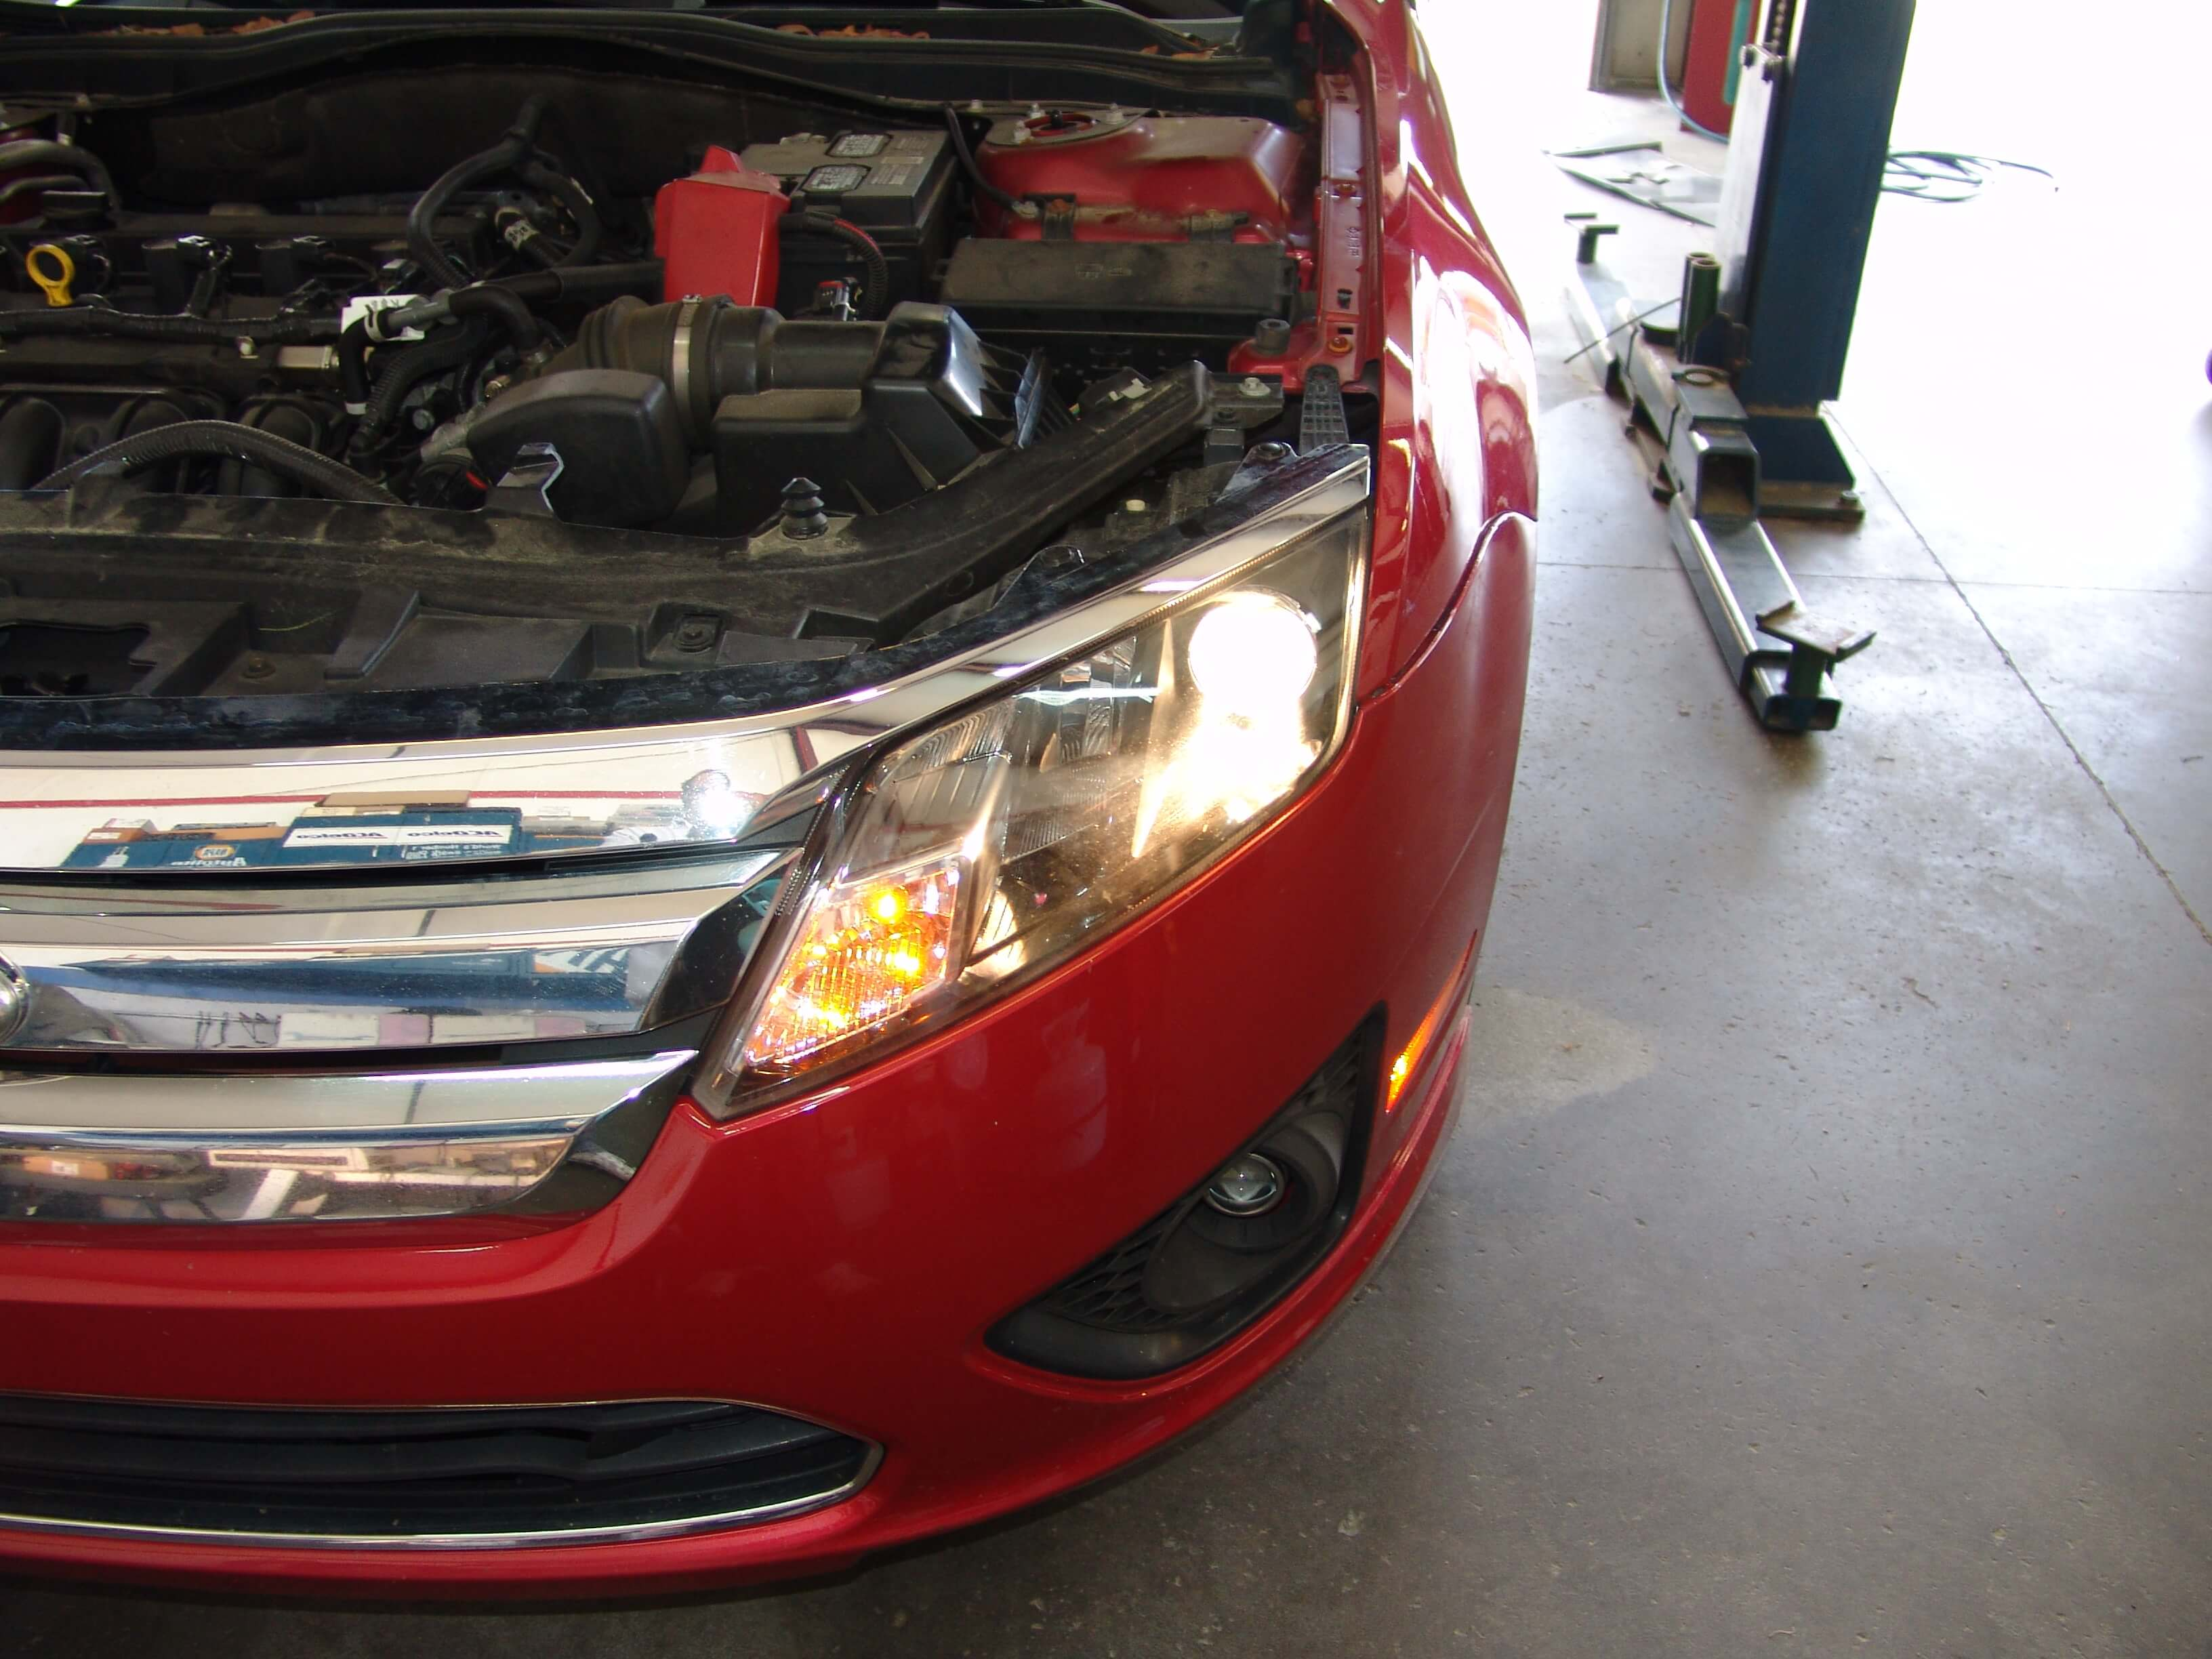 chrysler headlight wiring diagram sparkys answers 2012 ford fusion low beam    headlight    does  sparkys answers 2012 ford fusion low beam    headlight    does